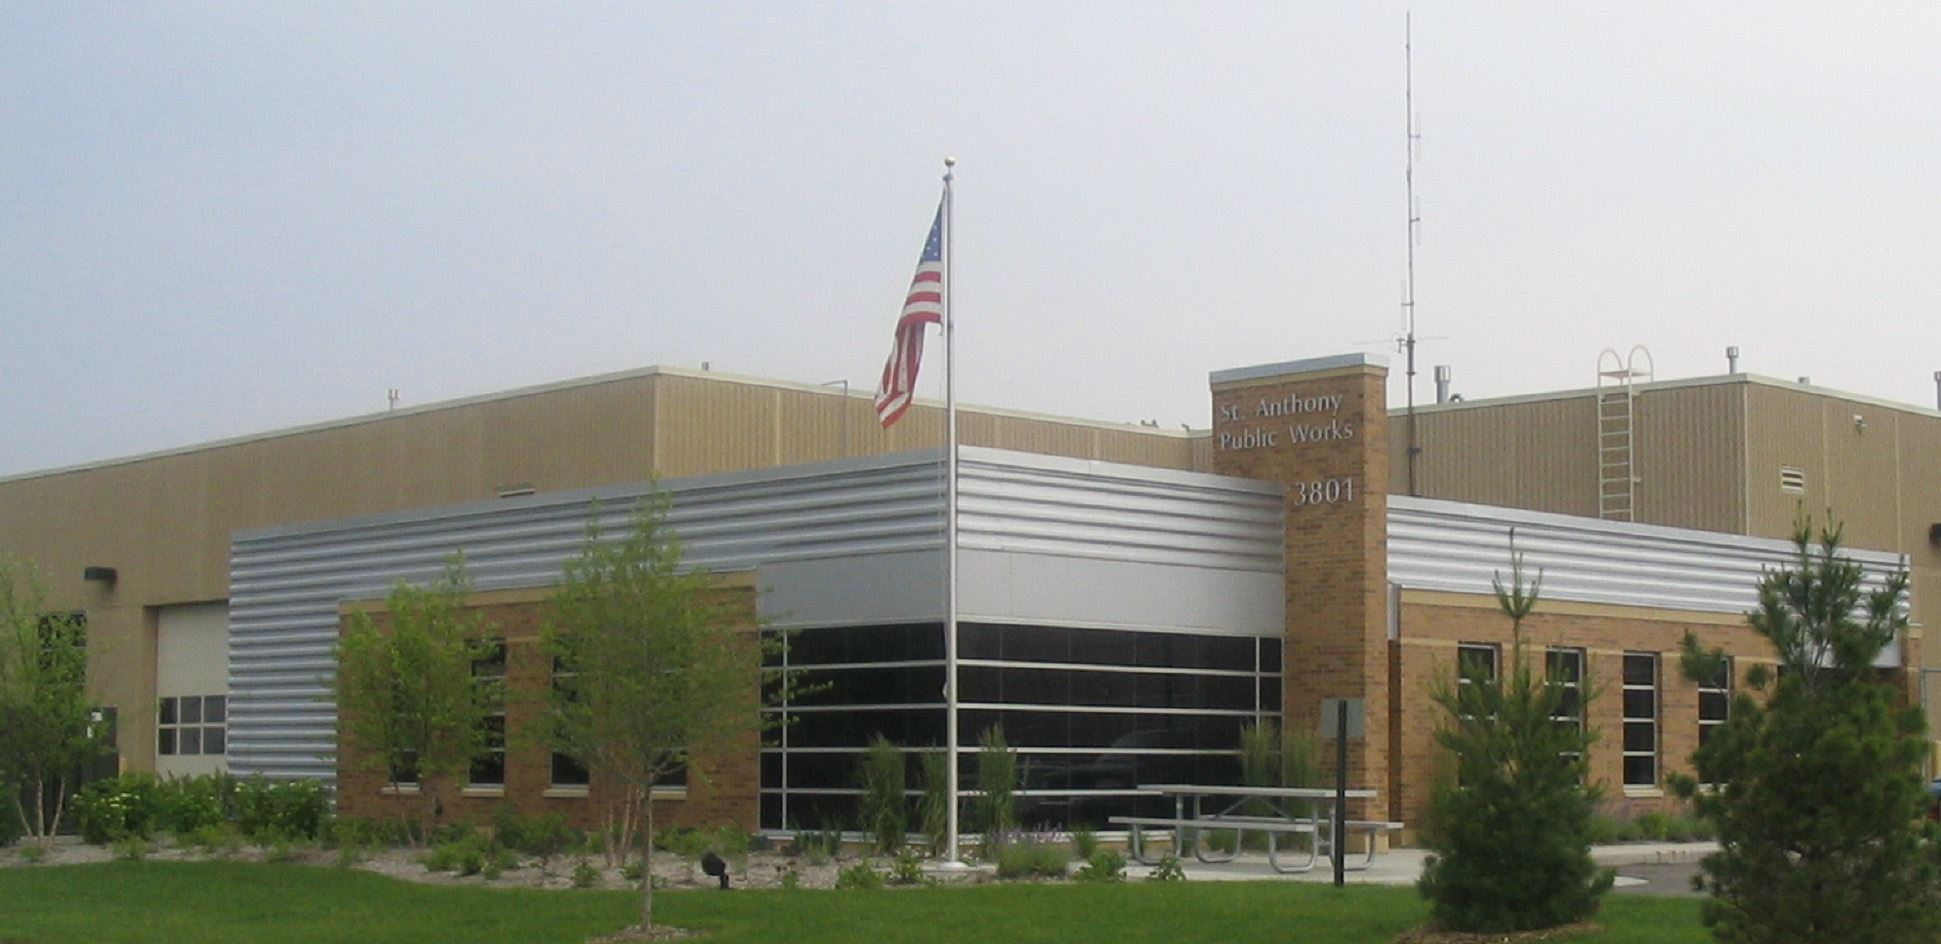 St. Anthony's Public Works Facility